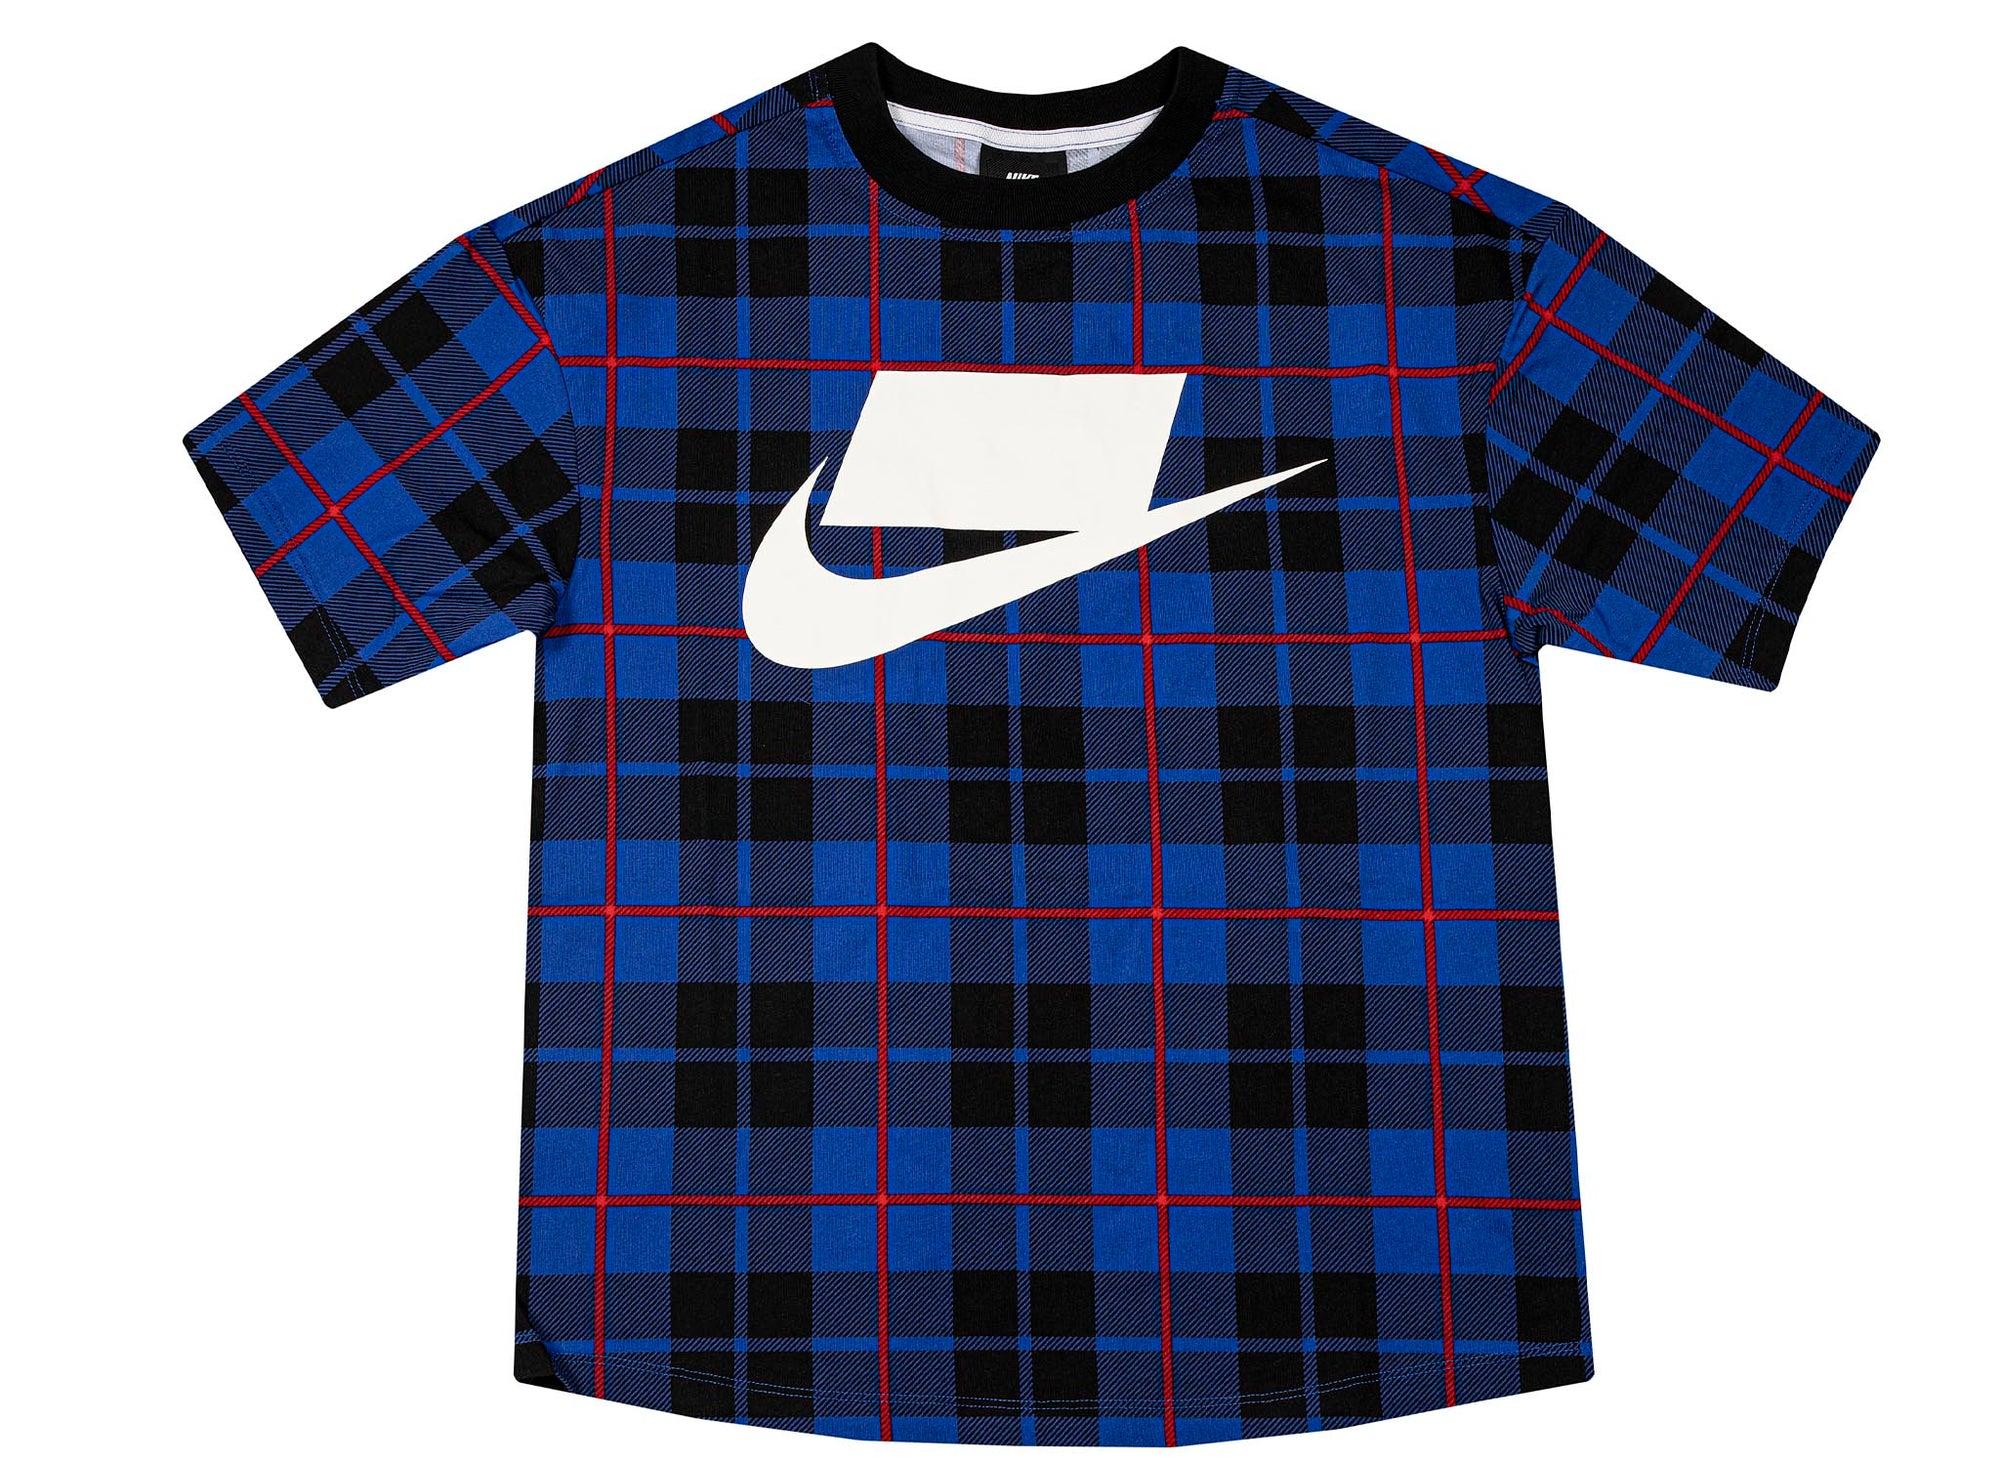 Nike Sportswear Women's Short-Sleeve Printed Top 'Blue Plaid'